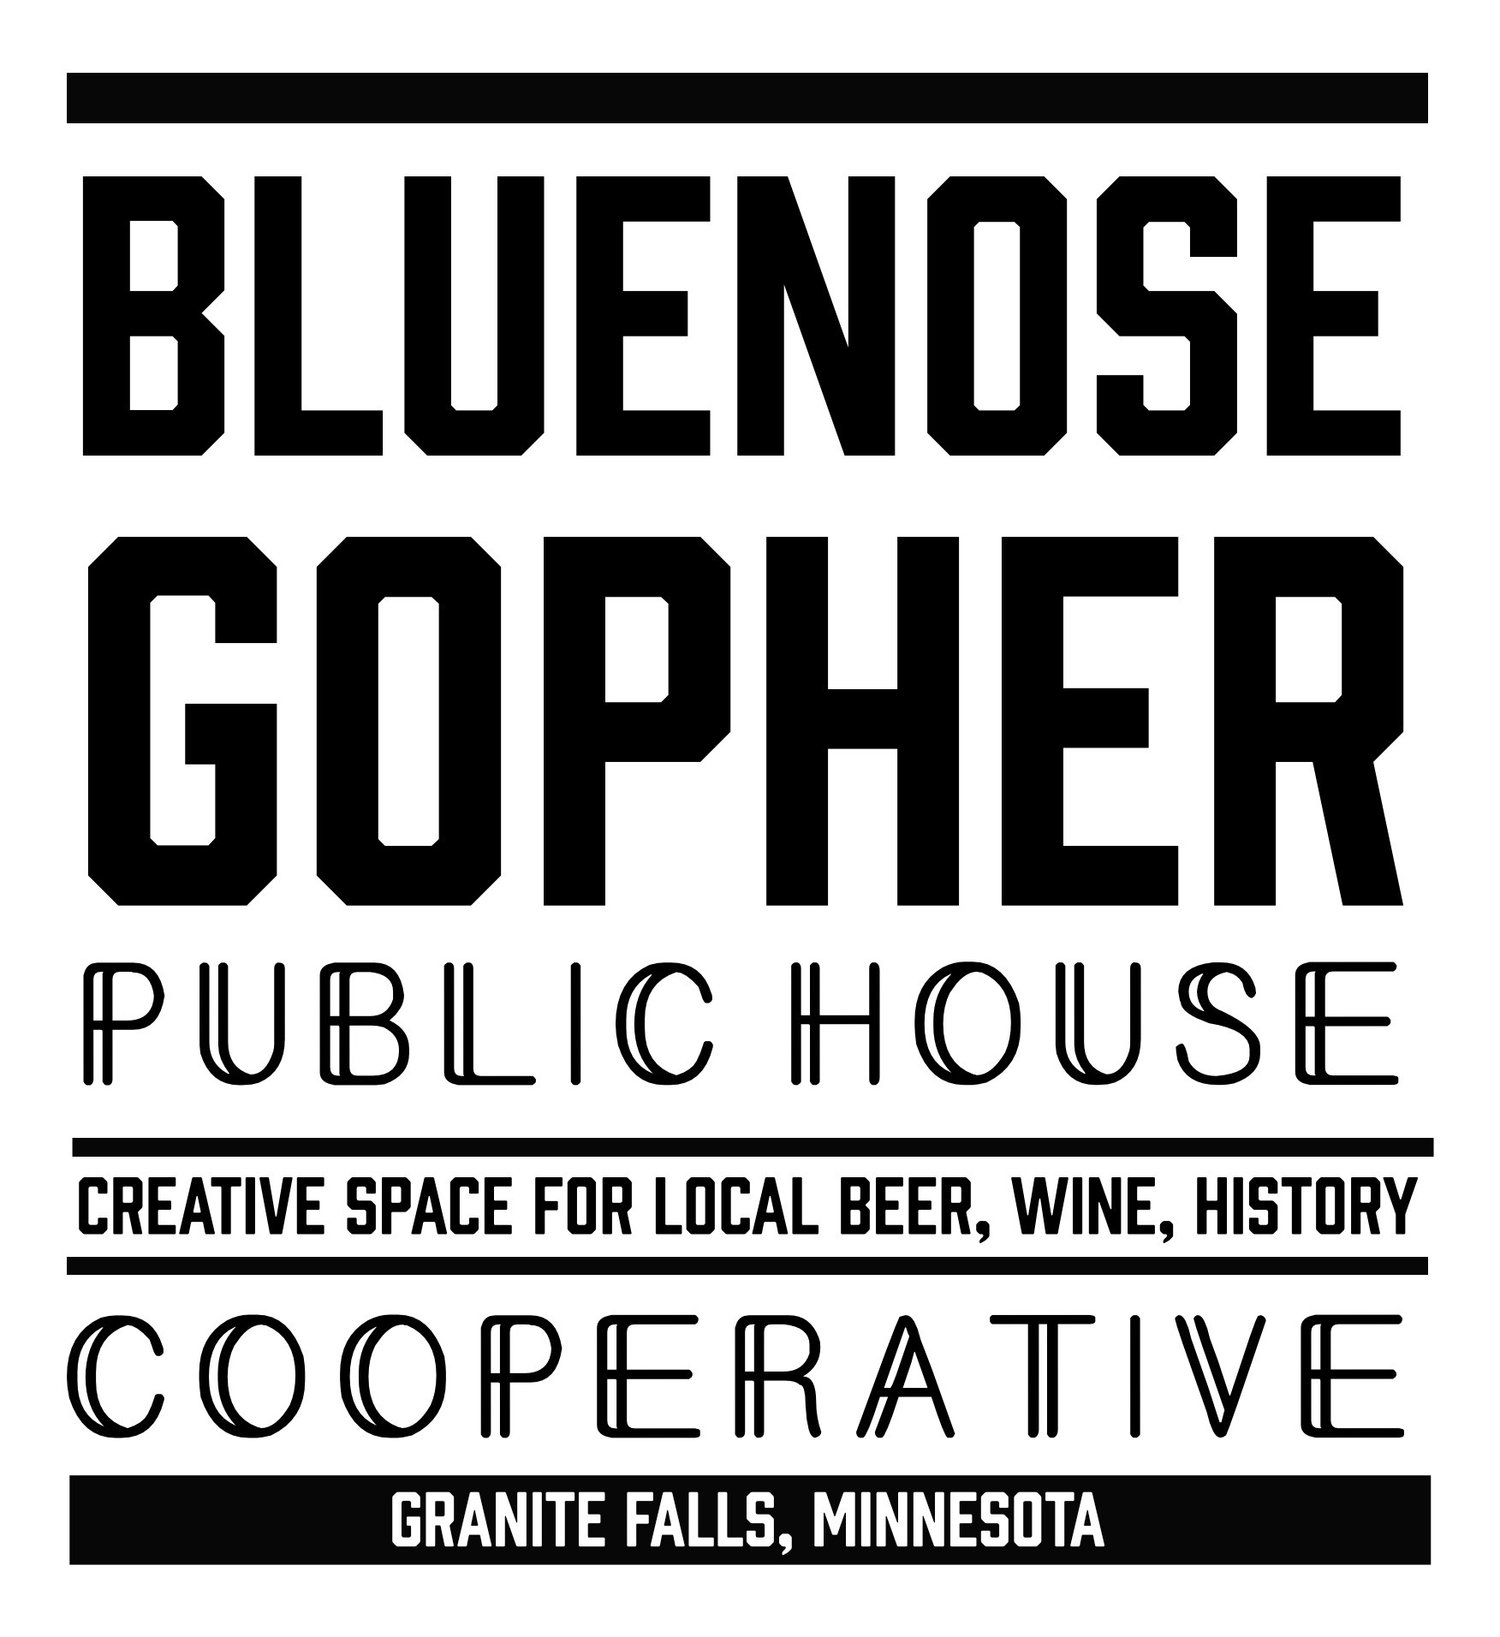 Bluenose Gopher Brewery